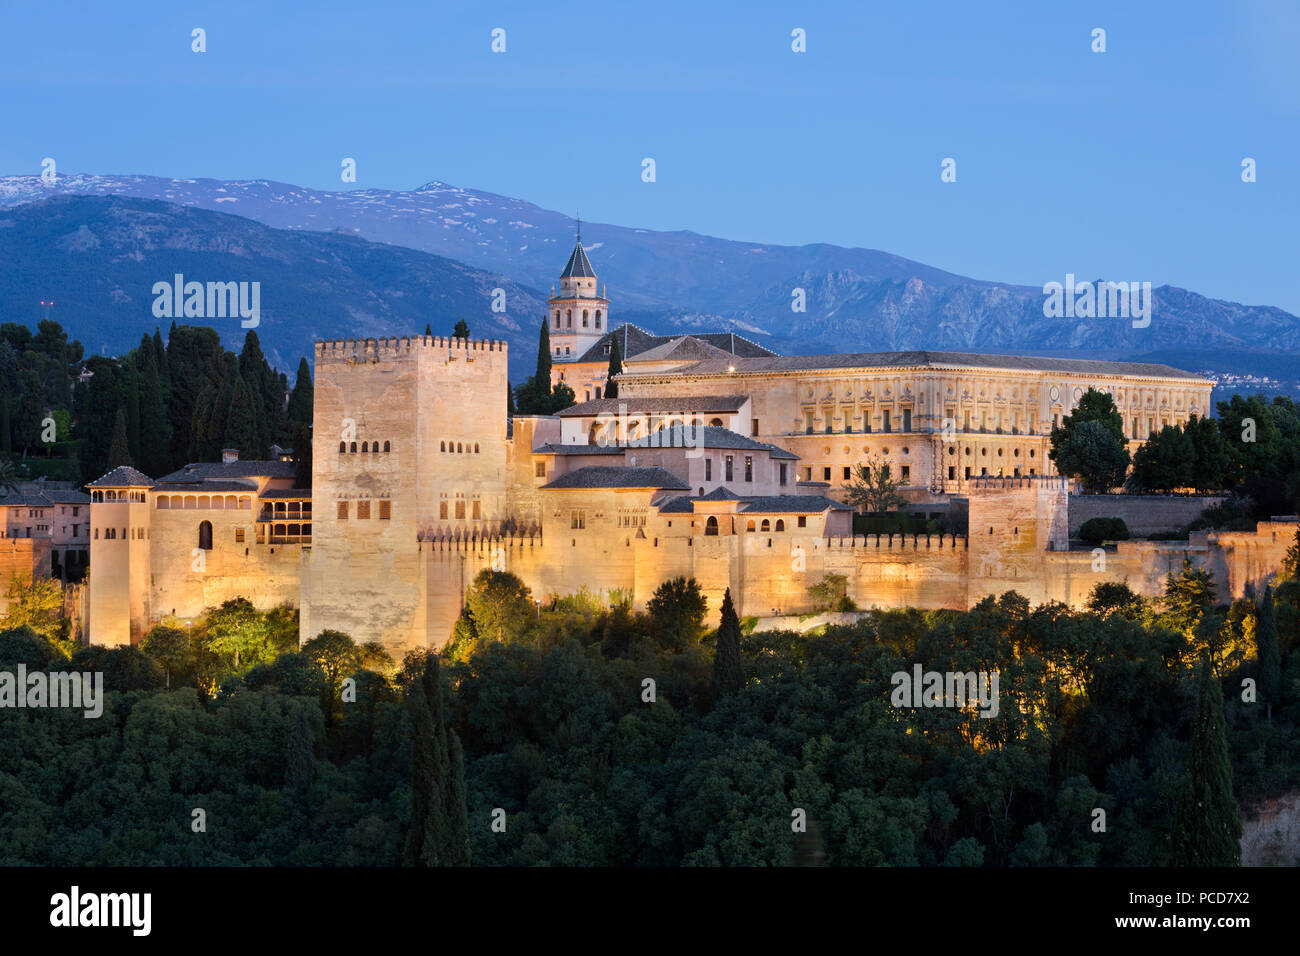 The Alhambra, UNESCO World Heritage Site, and Sierra Nevada mountains from Mirador de San Nicolas, Granada, Andalucia, Spain, Europe - Stock Image